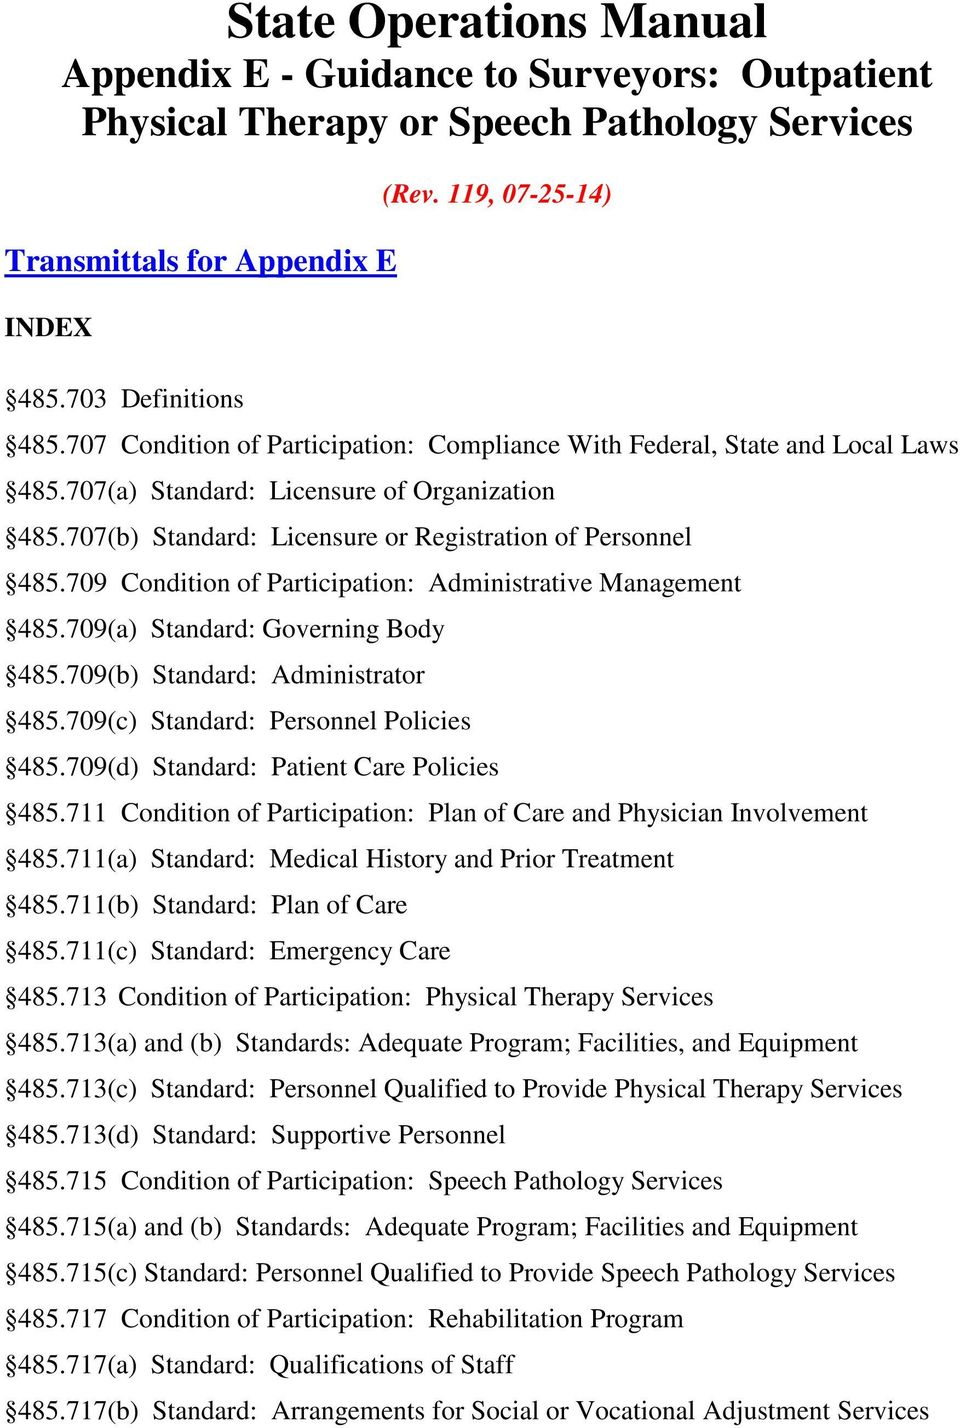 state operations manual appendix e guidance to surveyors rh docplayer net state operations manual appendix b cms state operations manual appendix b 2016